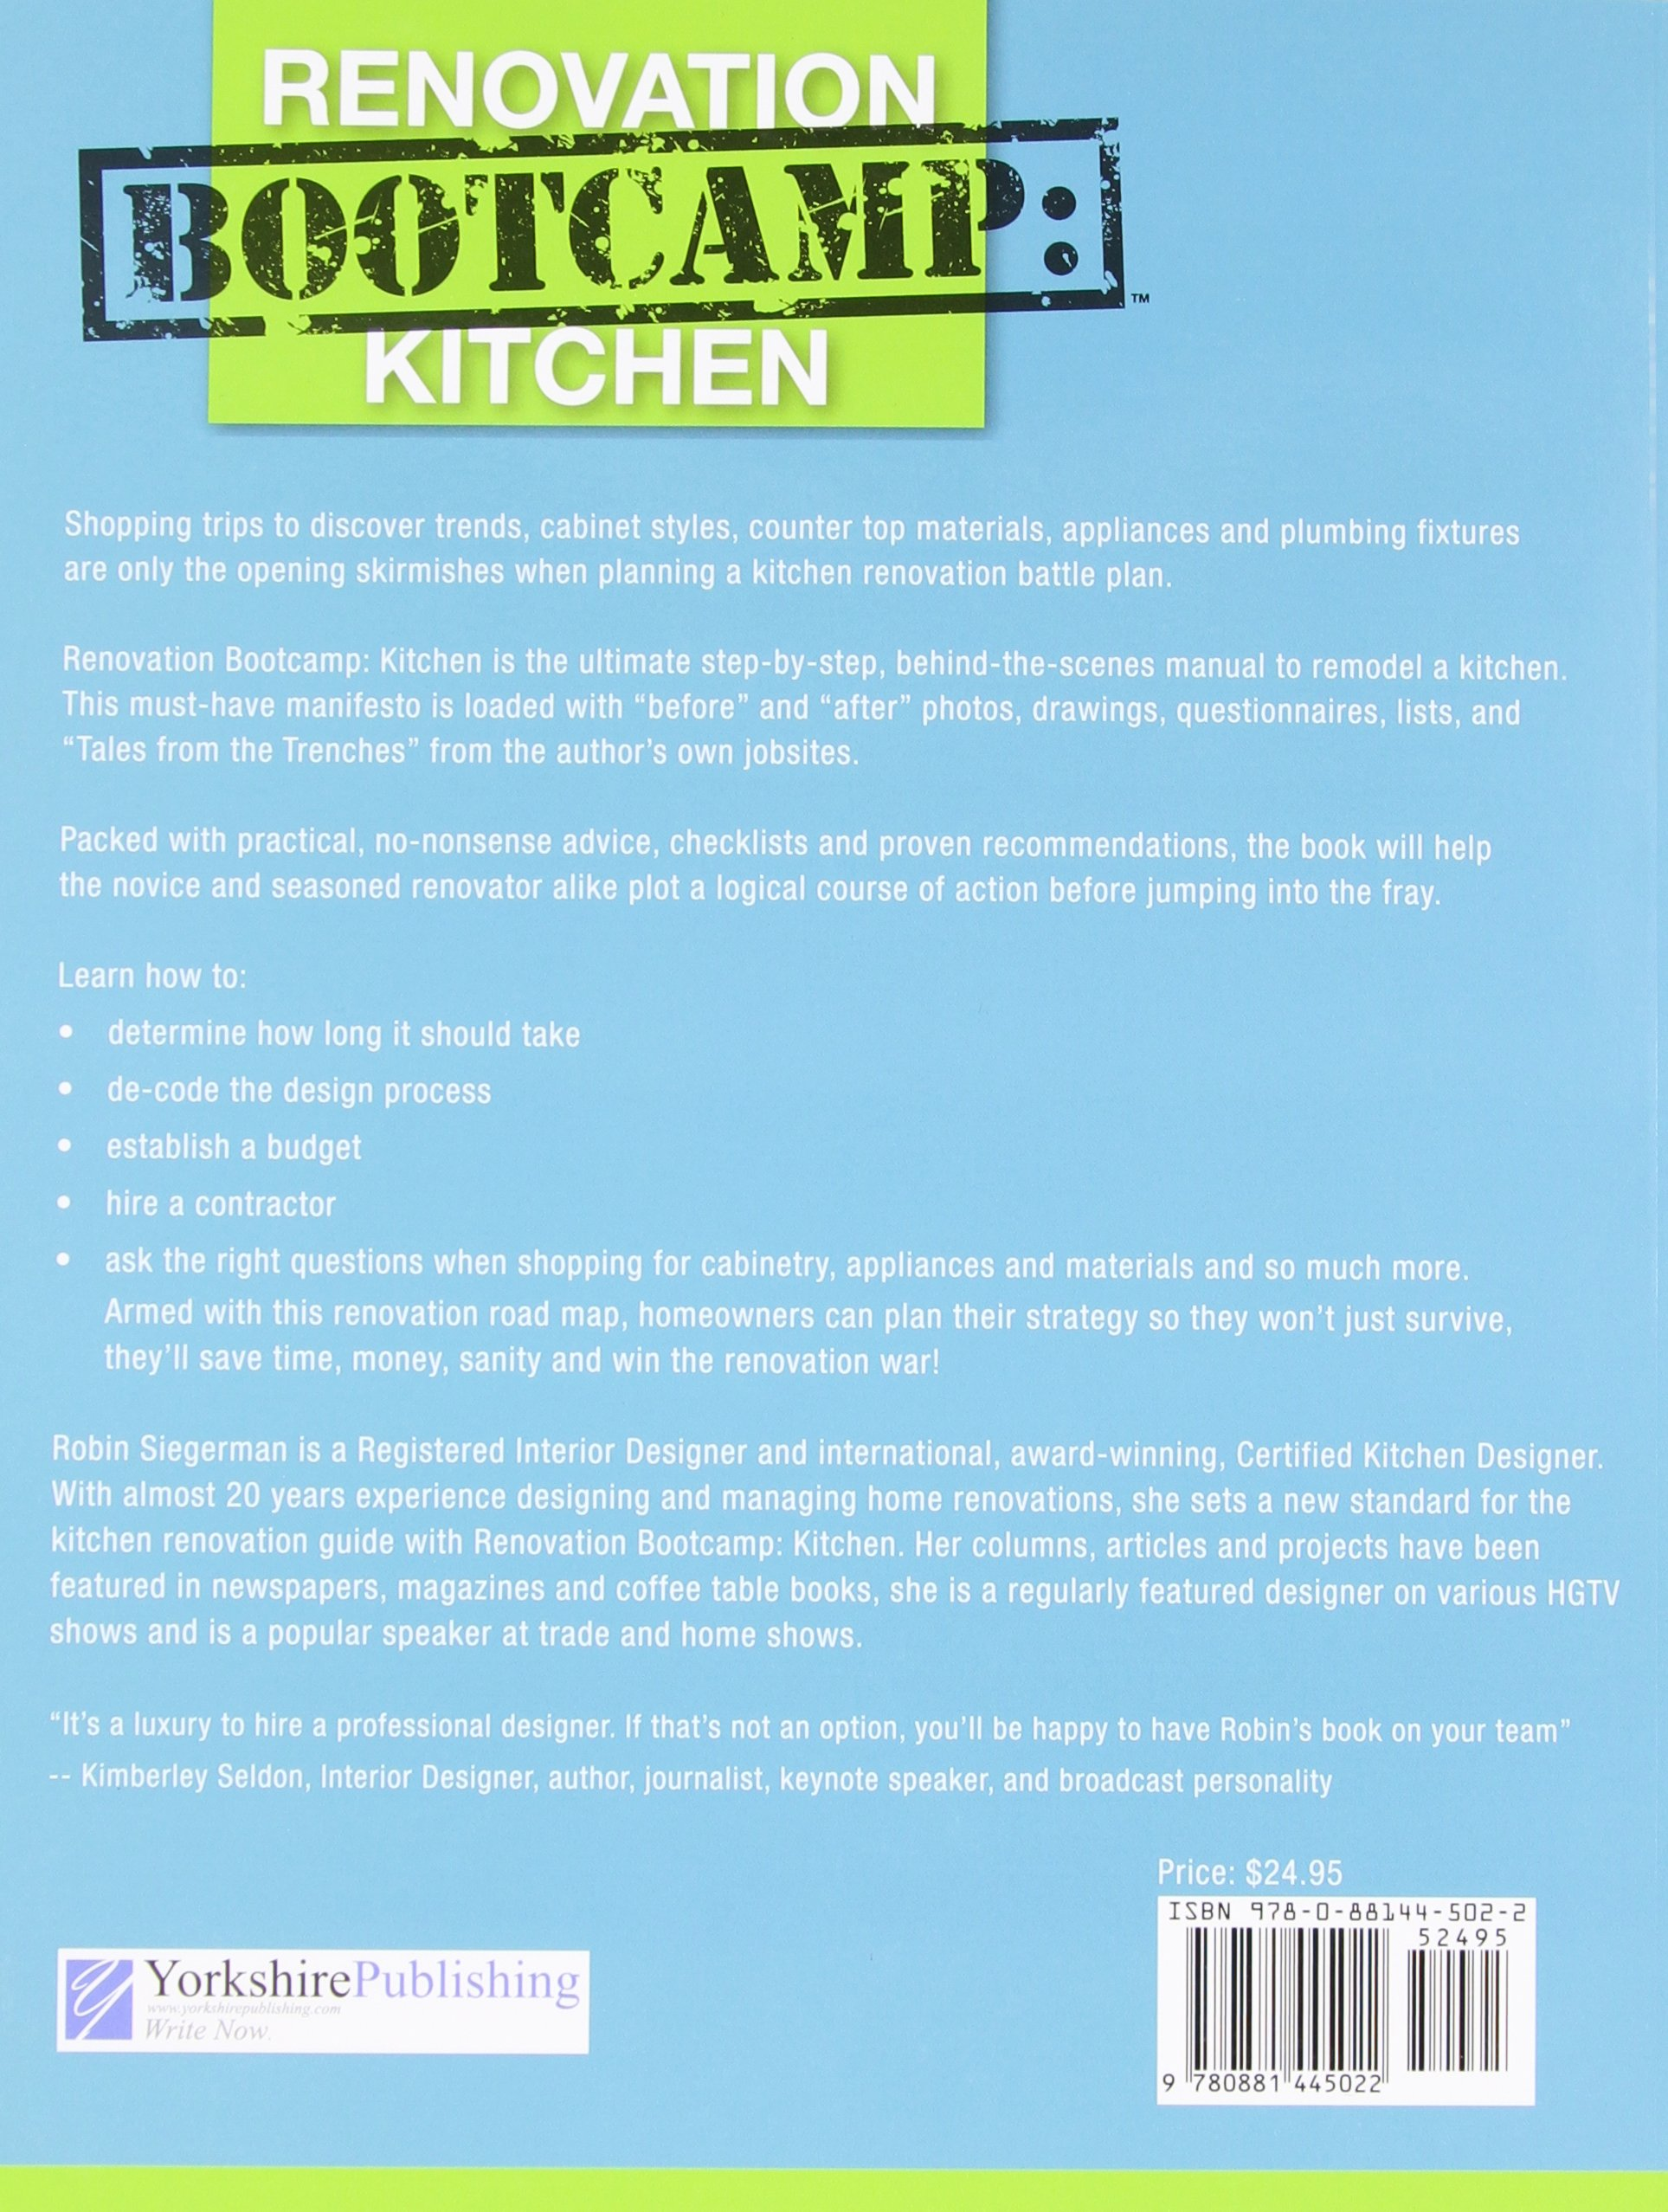 Renovation Bootcamp Kitchen Design And ReModel Your Kitchen